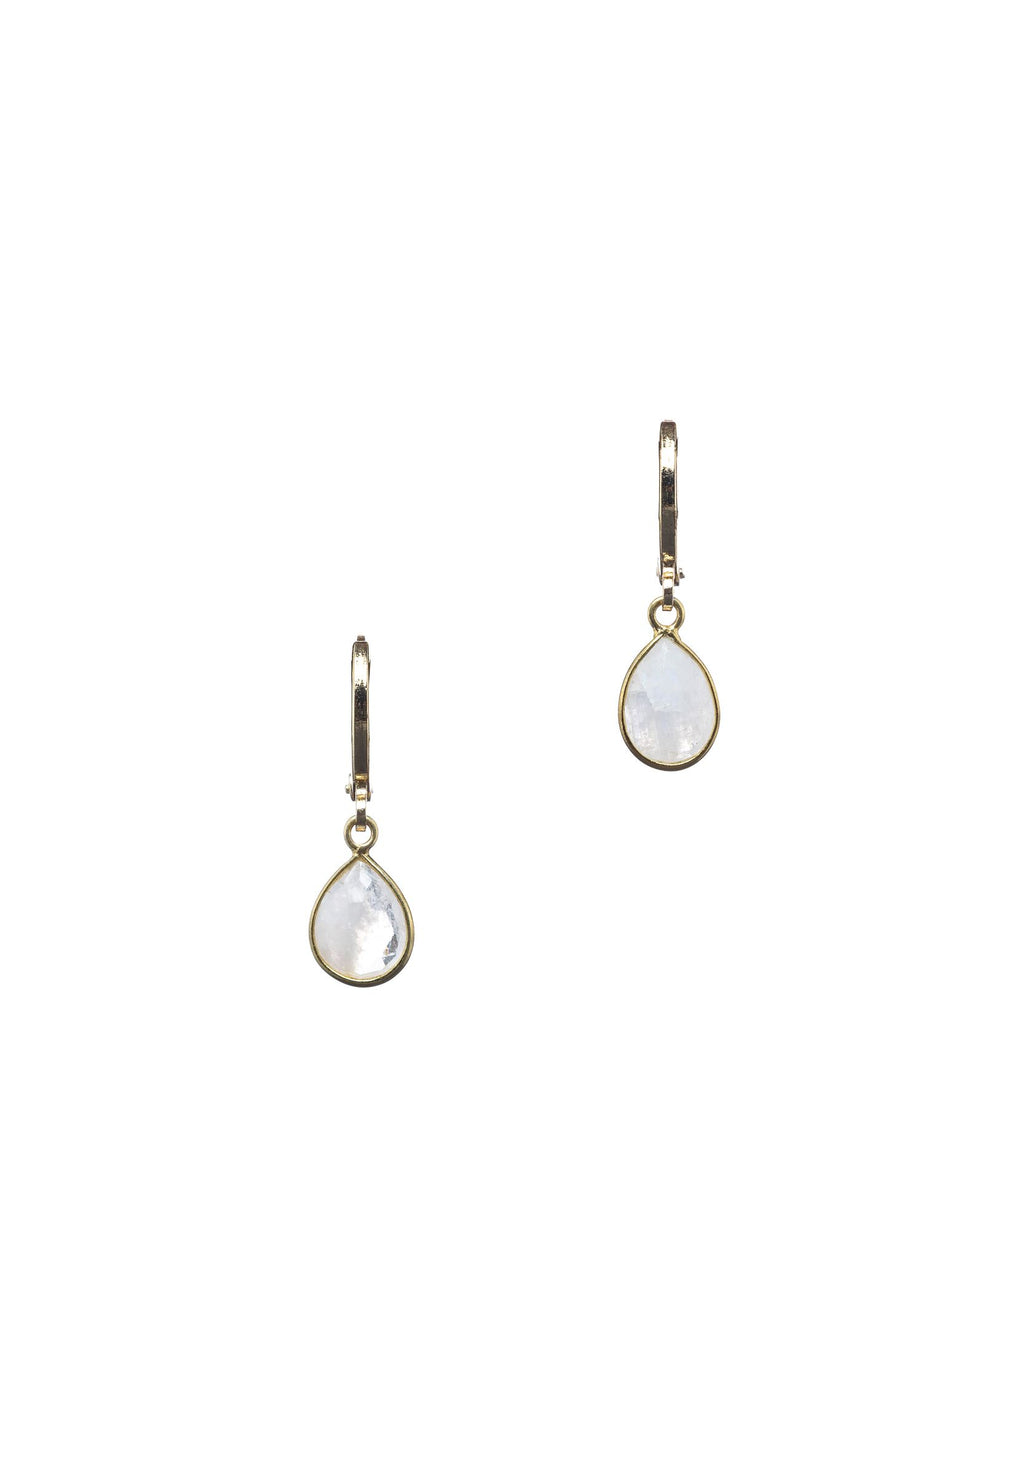 Dainty Moonstone Droplet Hoops | Antonia Y. Jewelry